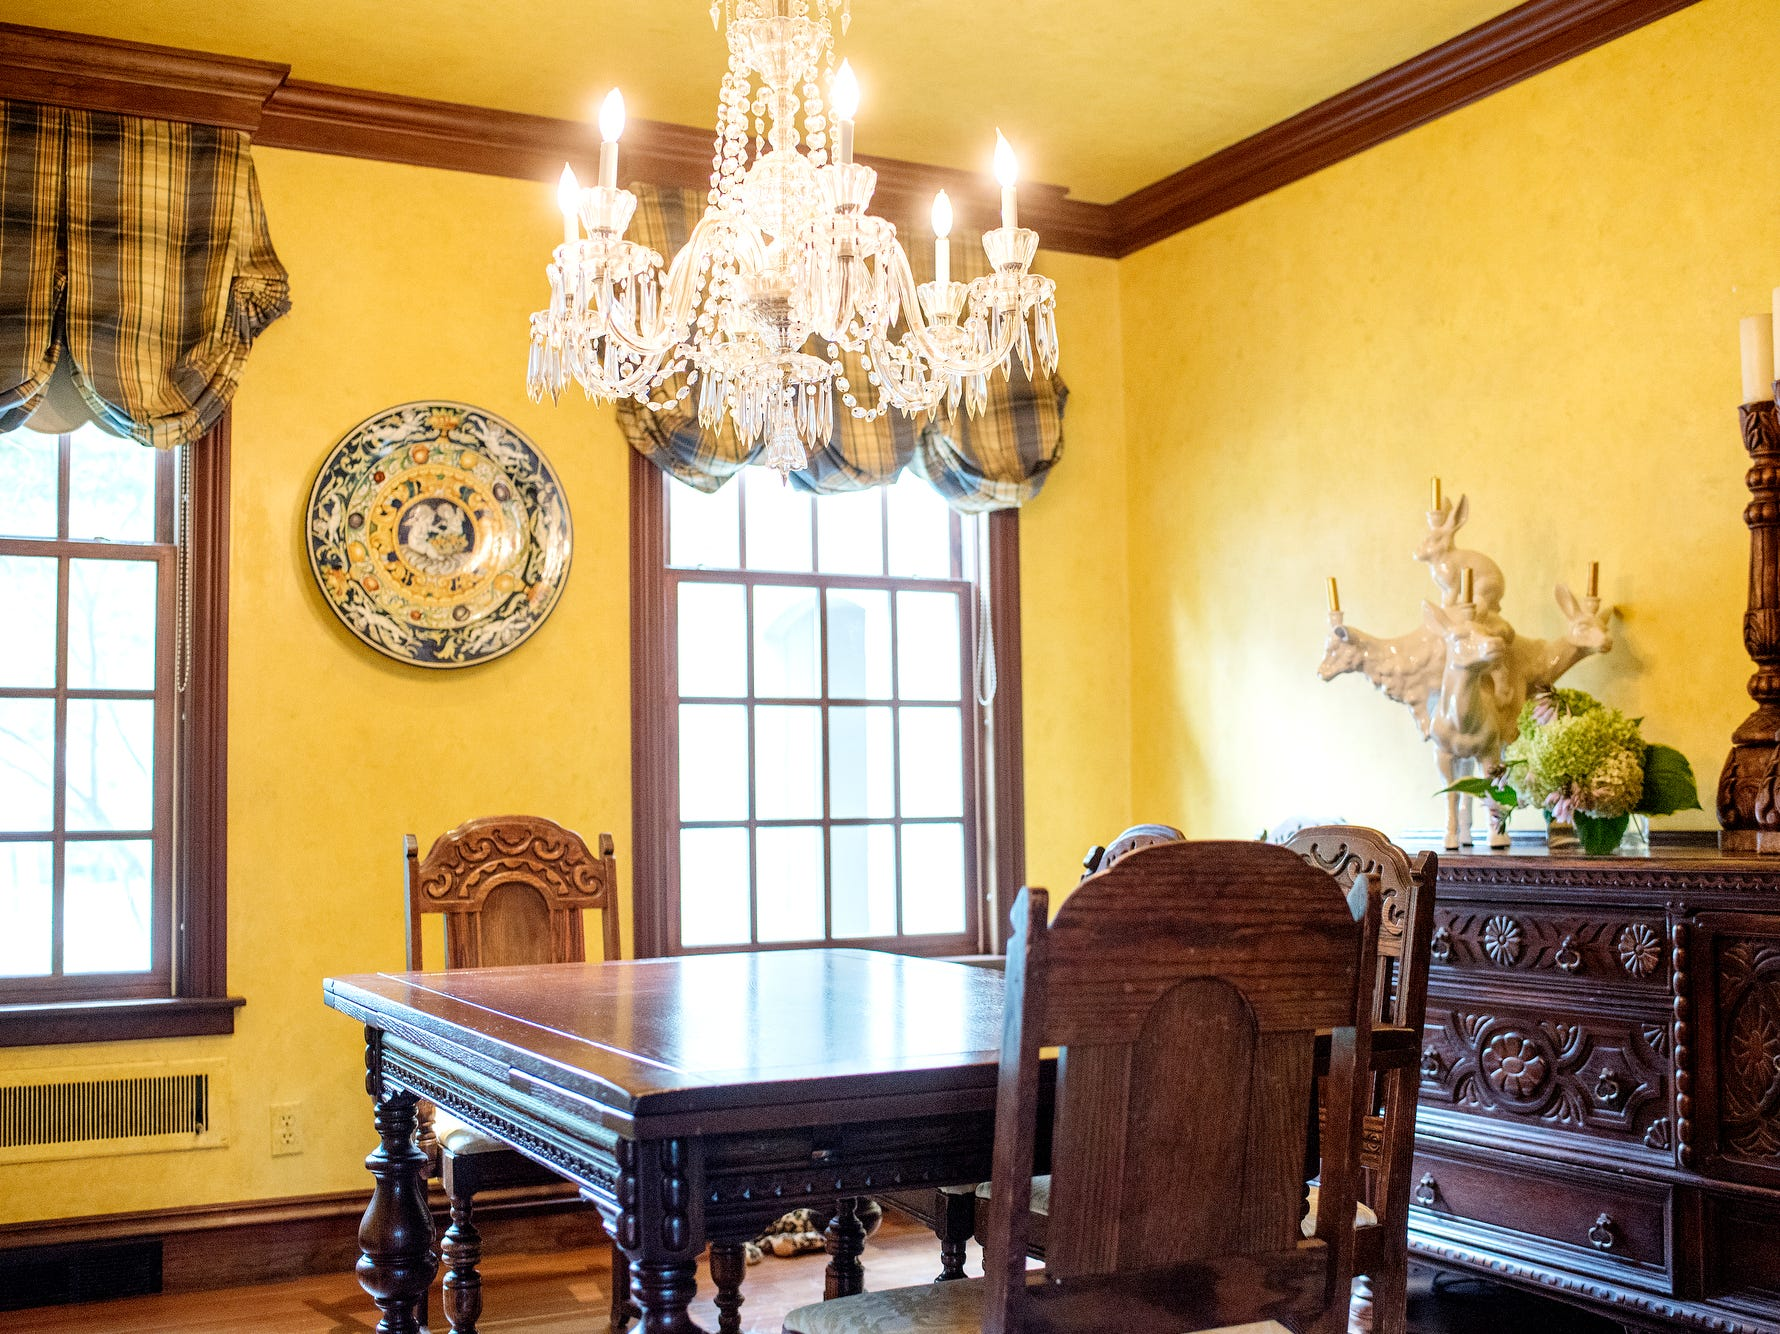 The dining room inside Deb Atkinson's historically Colonial home photographed on Tuesday, July 24, 2018, in East Lansing. Built in 1930, the Colonial-style home surrounded by greenery and beautifully renovated is now on the market.